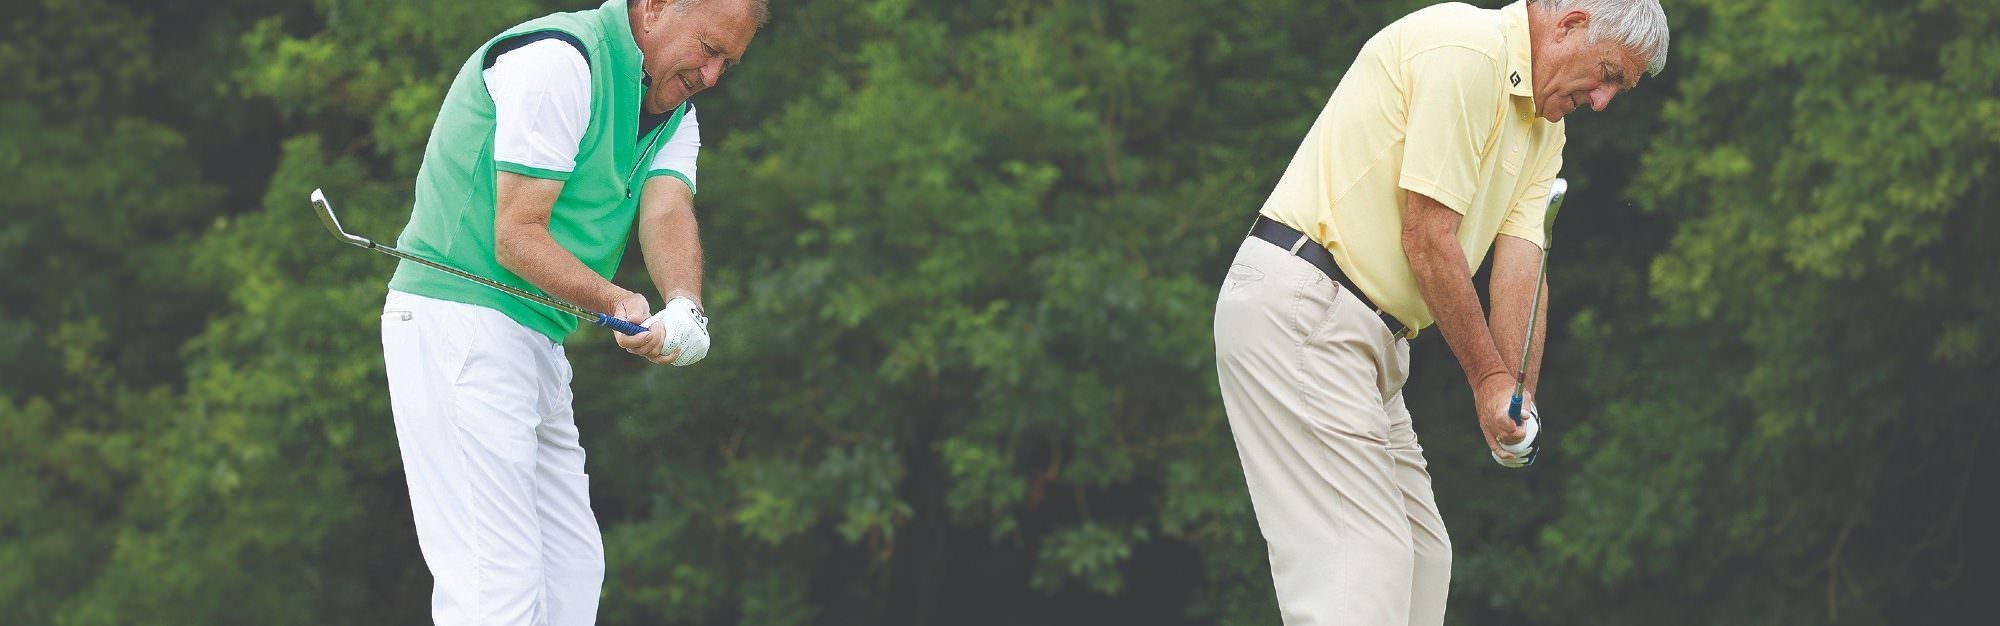 Why swinging a golf club should be as natural as throwing a ball